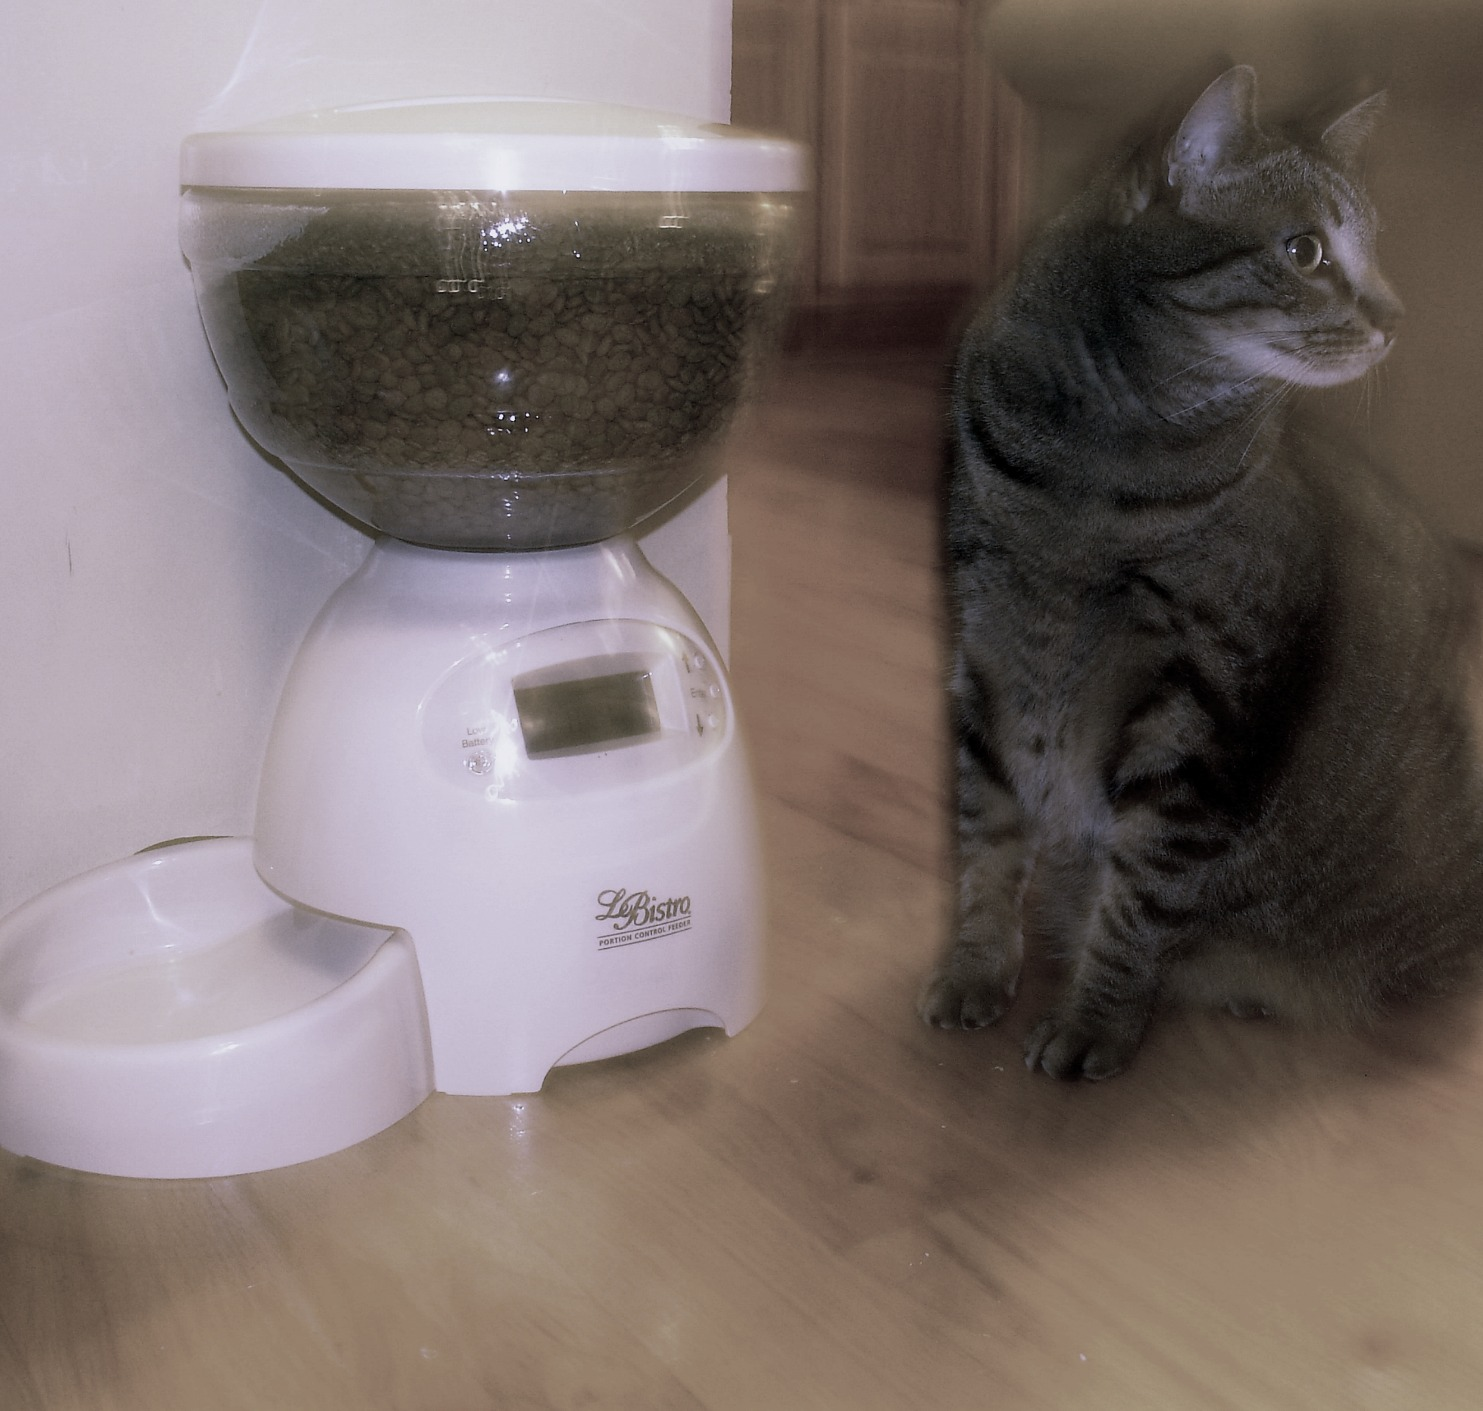 sophie next to and as big as cat feeder